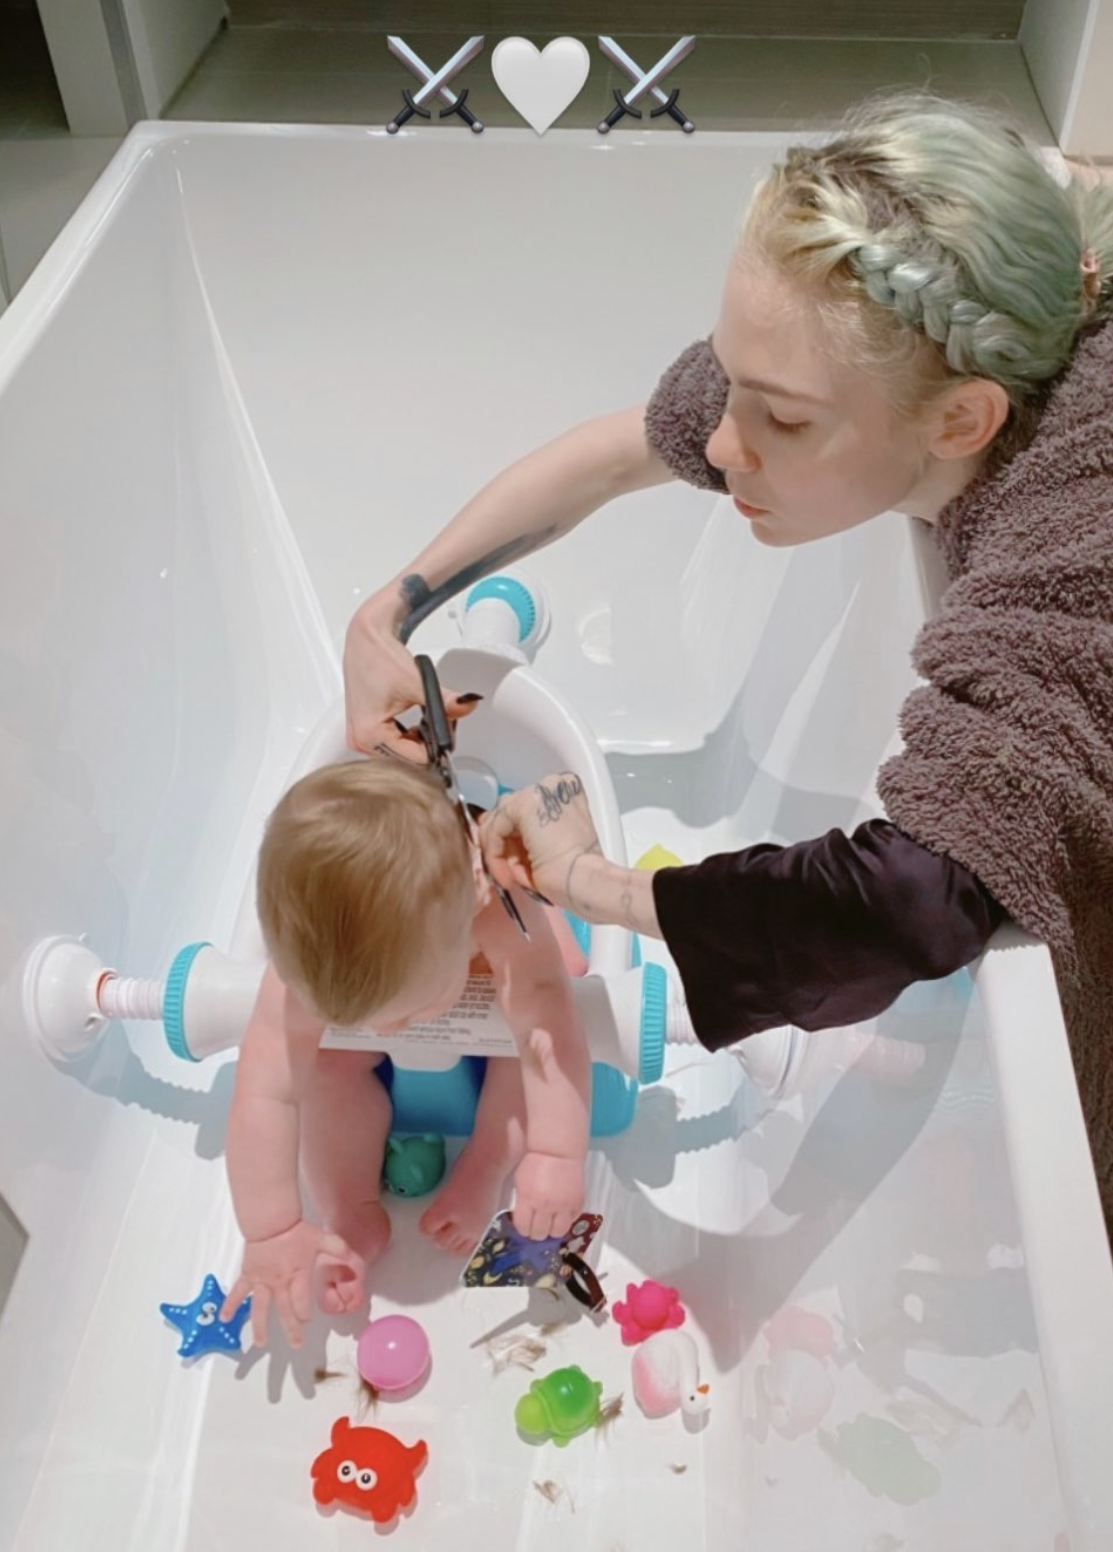 Grimes Answers Questions About New Album, Parenting, Going To Mars